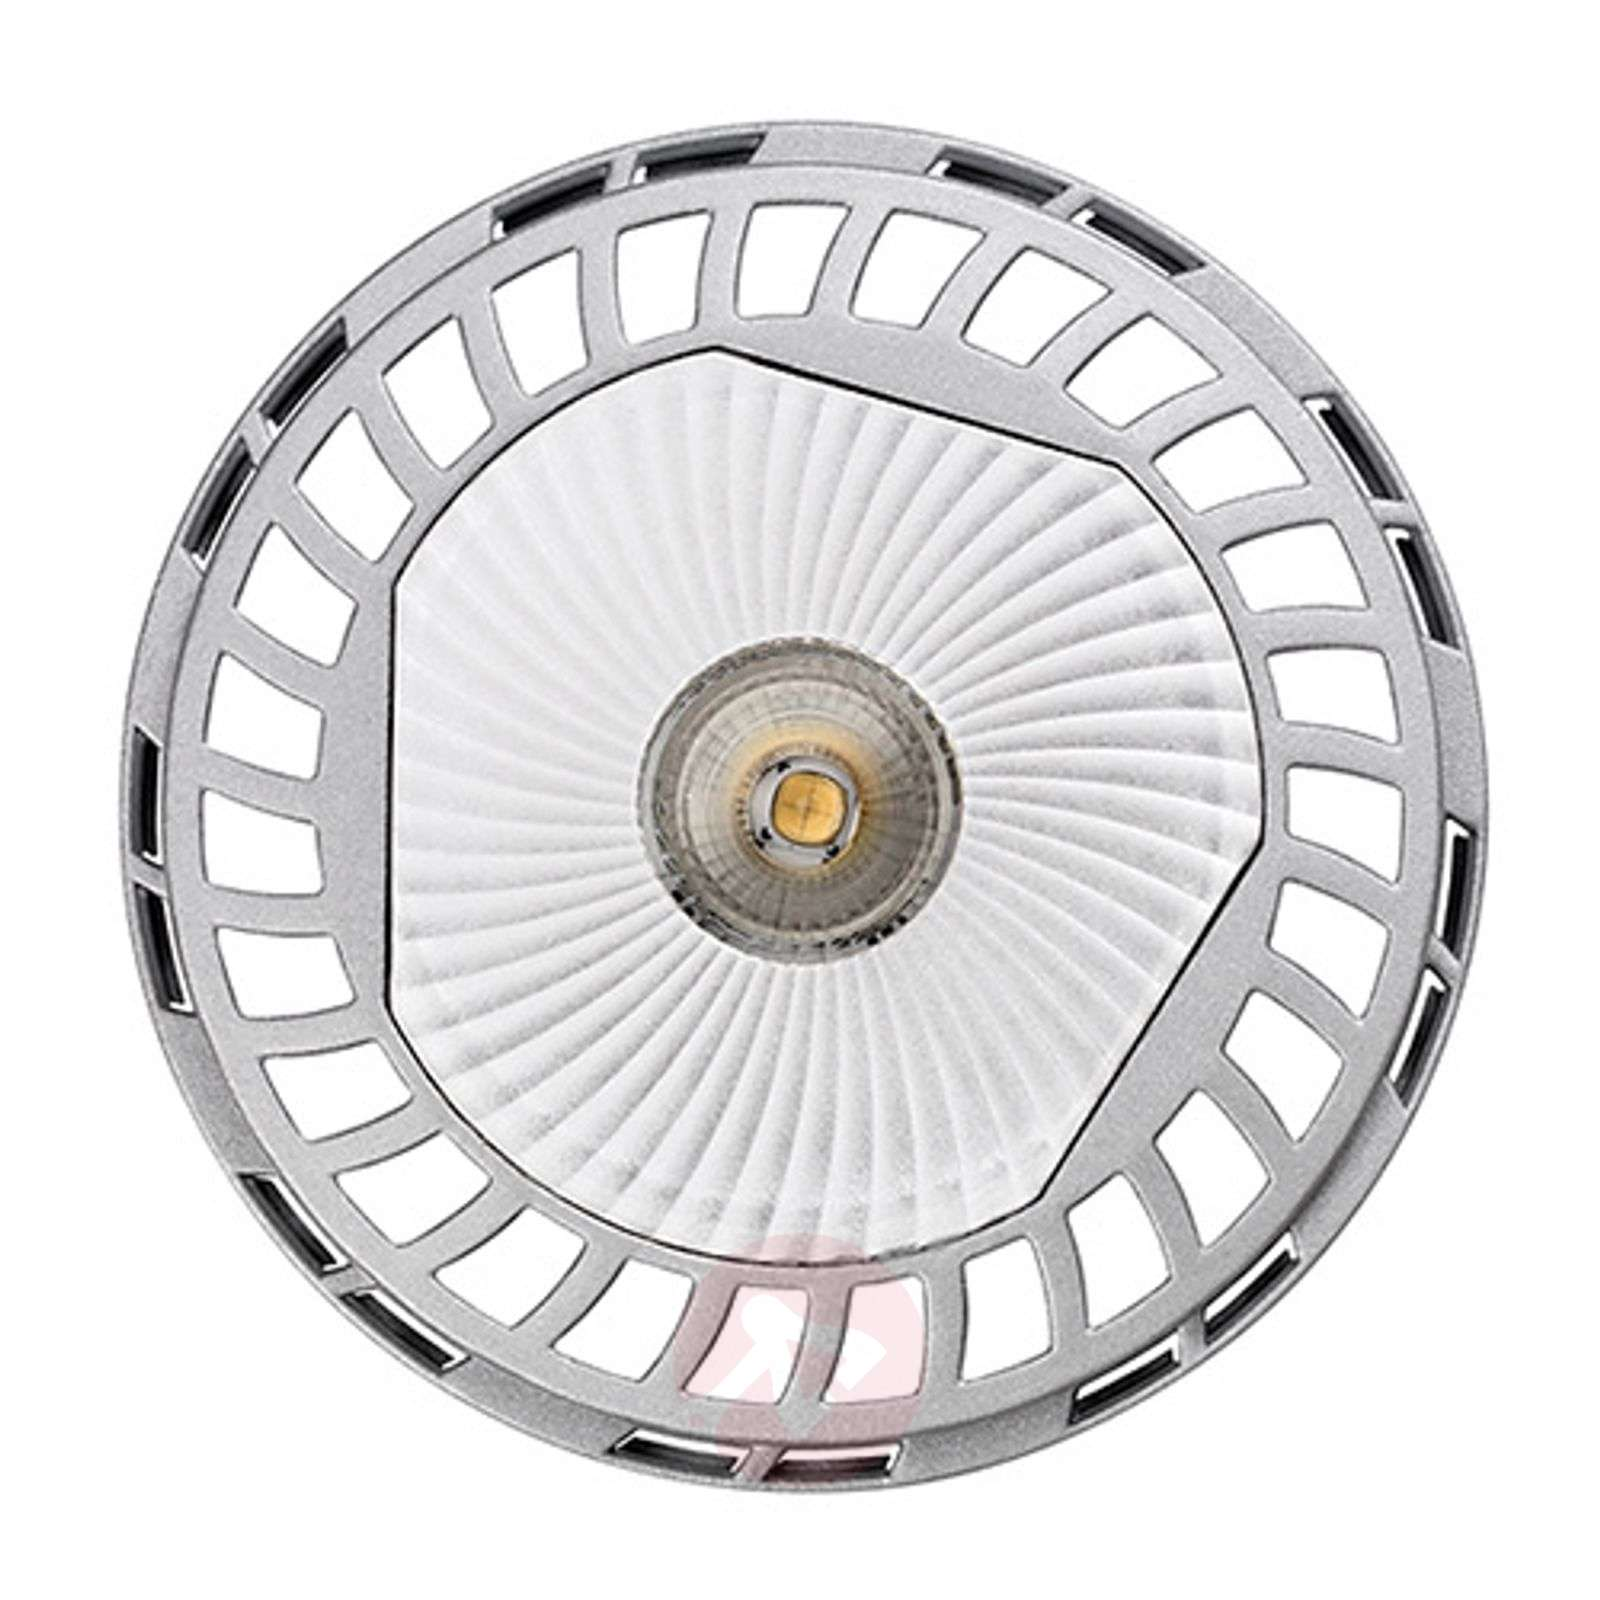 G53 13W 830 LED-heijastinl. Superia AR111 25degree-8530185-01